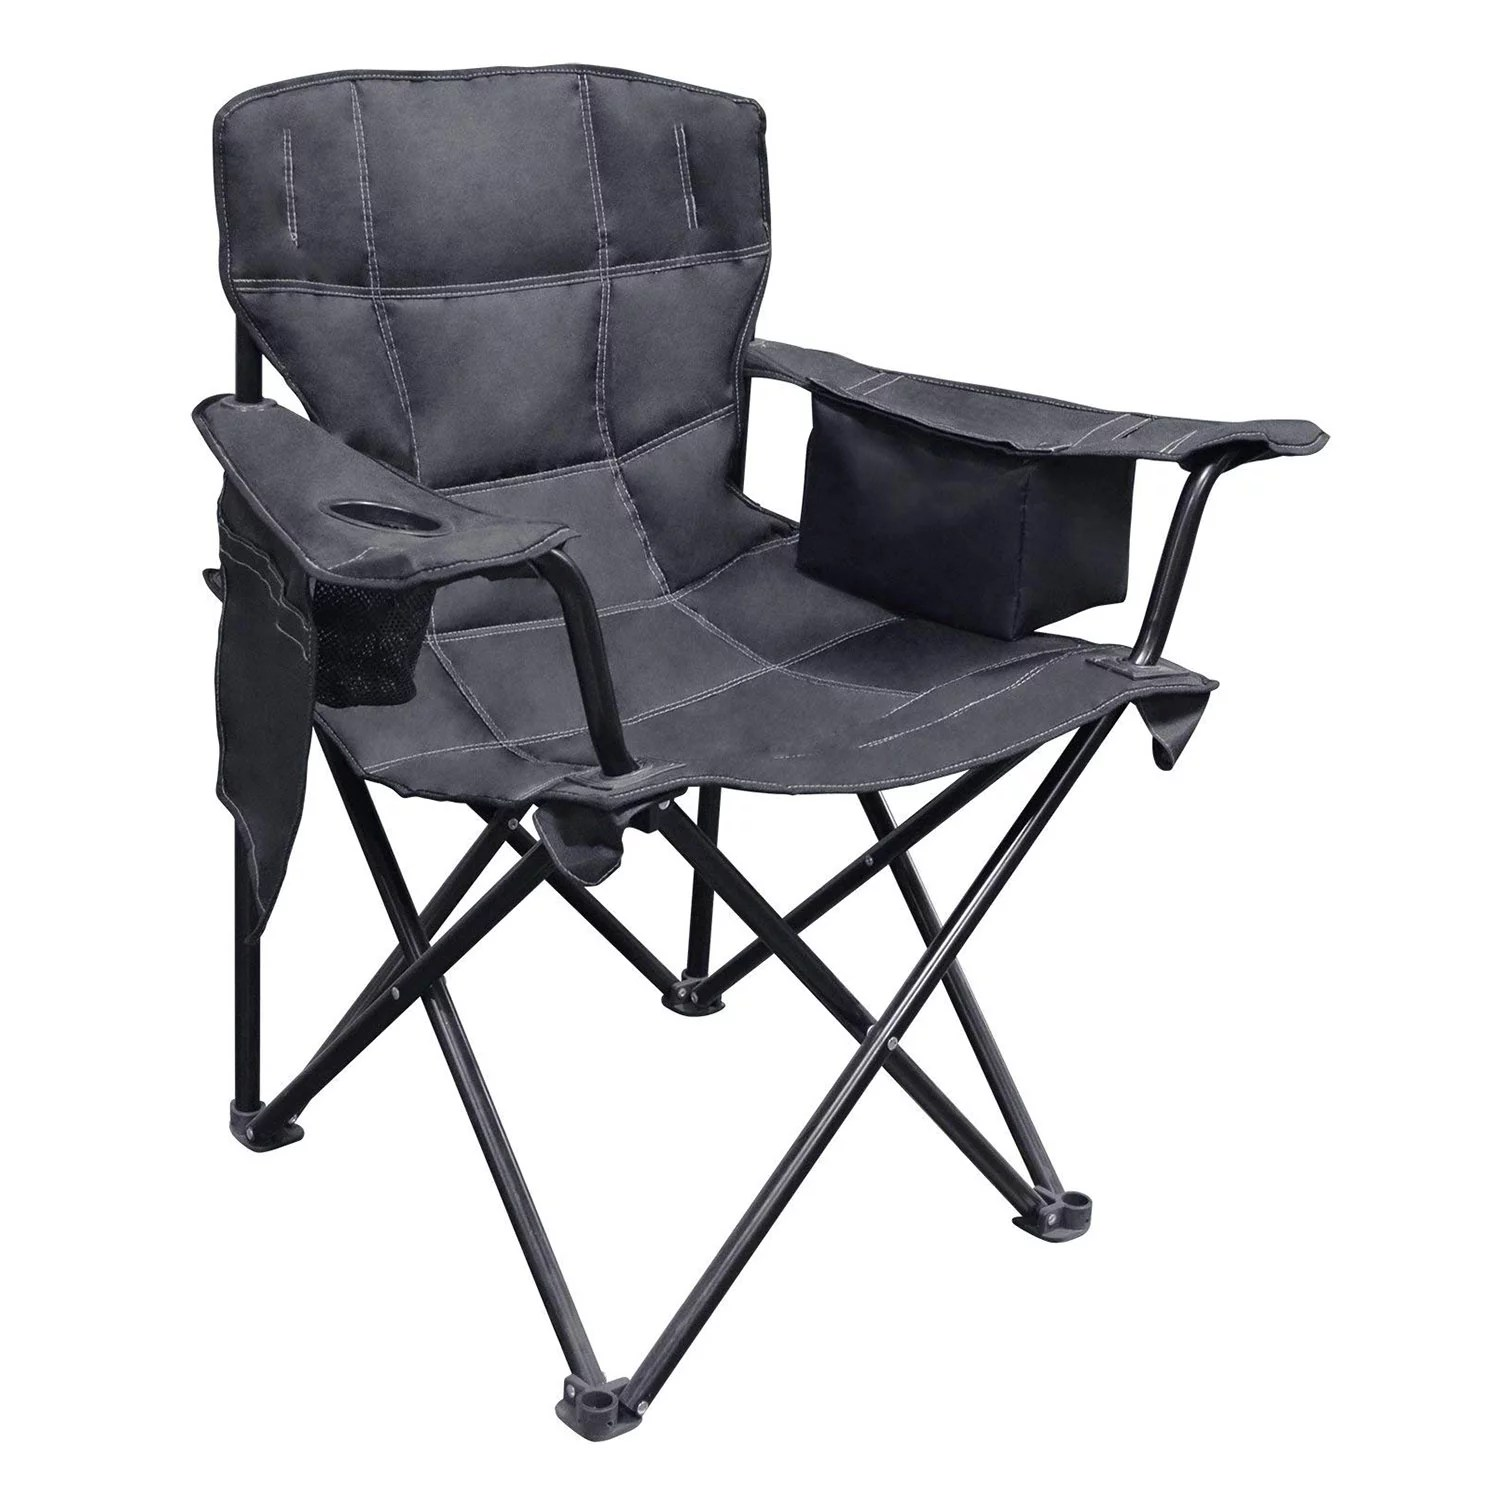 Camping Chair With Canopy Caravan Canopy Elite Quad Outdoor Camping Chair With Built In Cooler Black